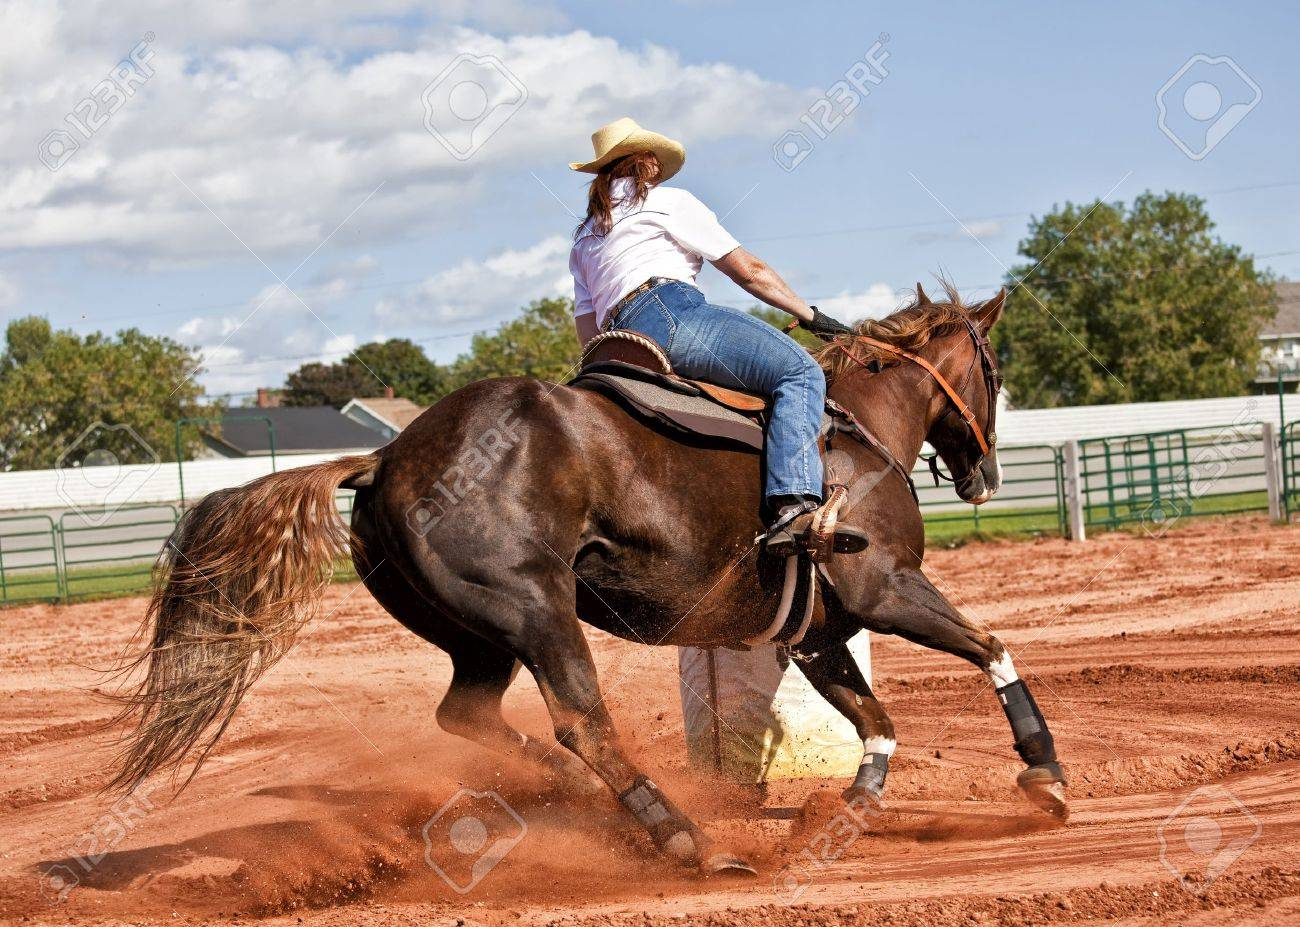 Western horse and rider competing in pole bending and barrel racing competition. Stock Photo - 18702116